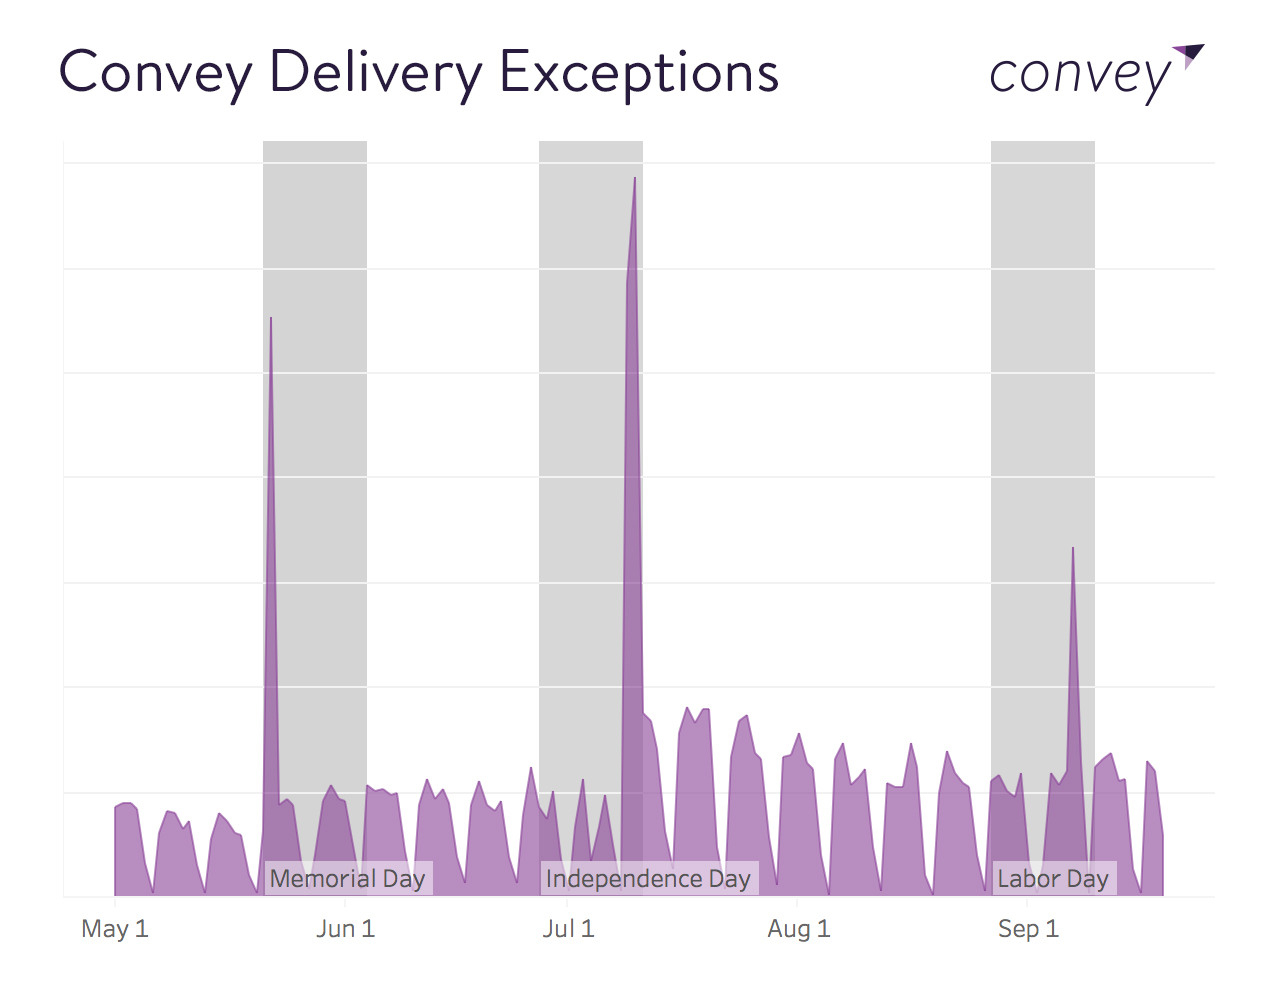 Blog Reducing Postholiday Delivery Delays Convey